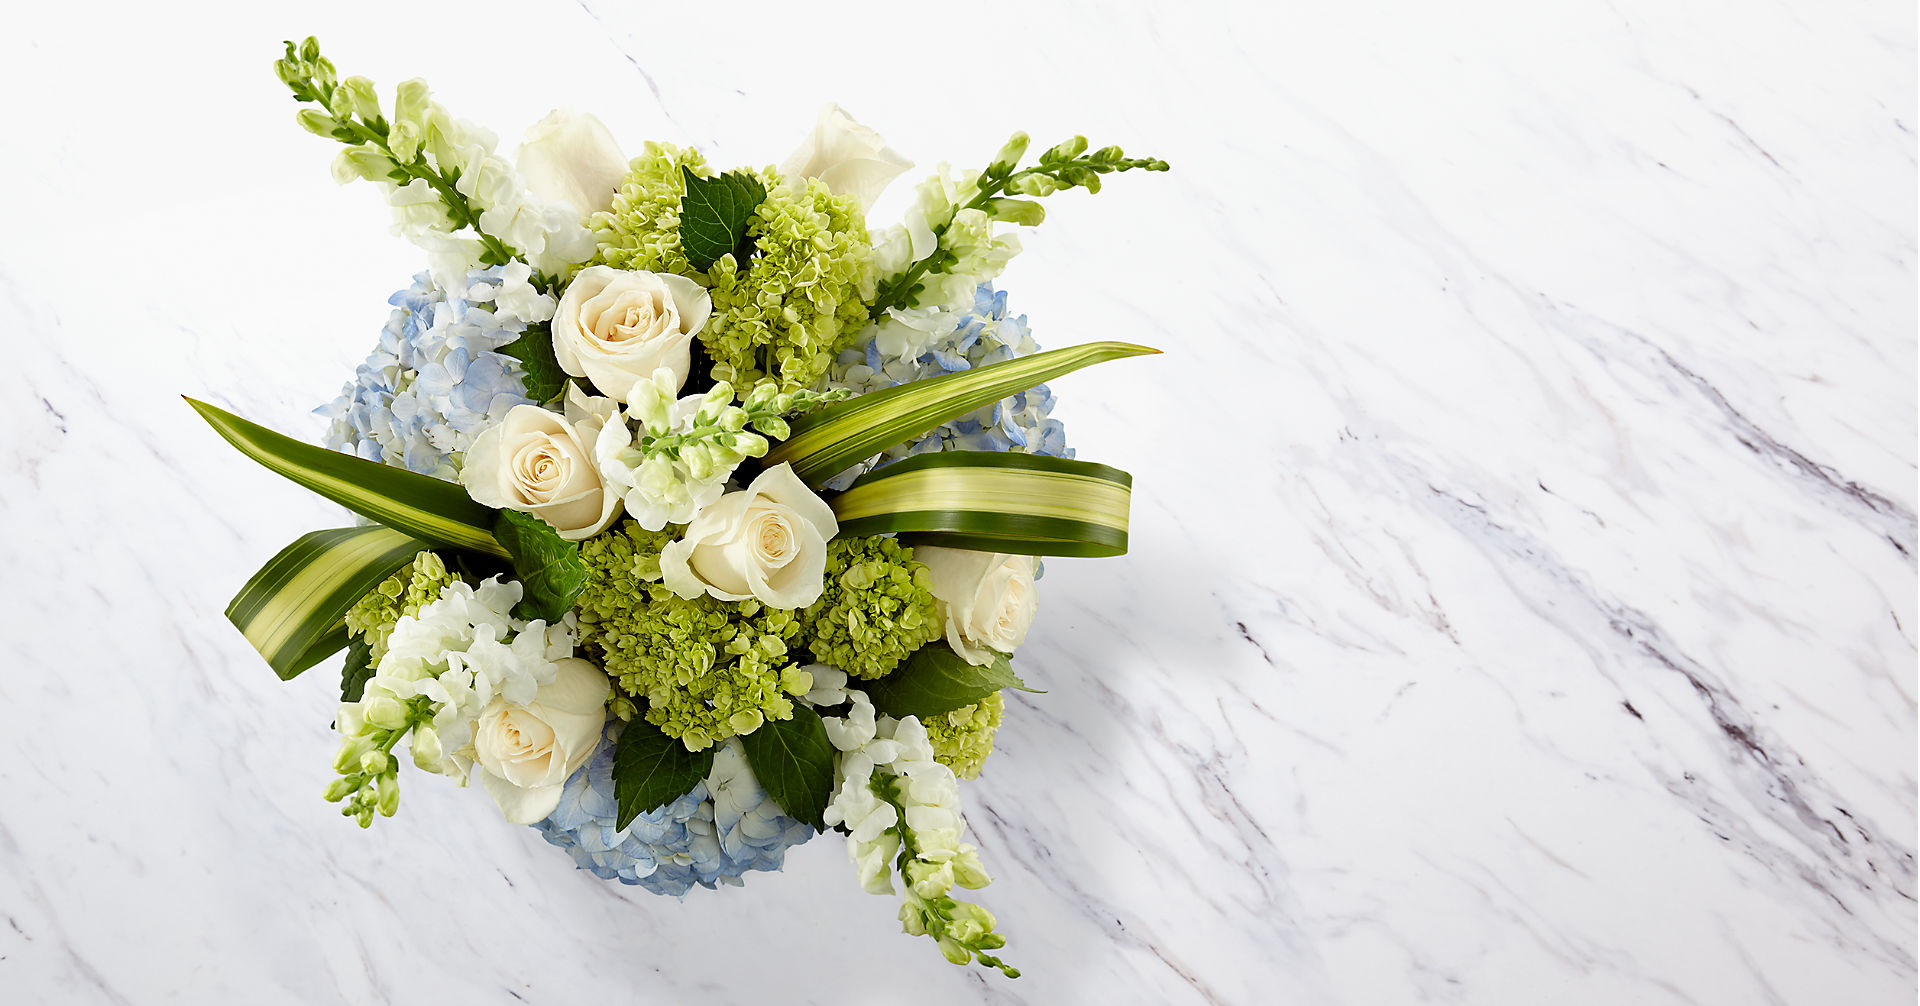 Superior Sights™ Luxury Bouquet - Blue & White - Image 2 Of 4